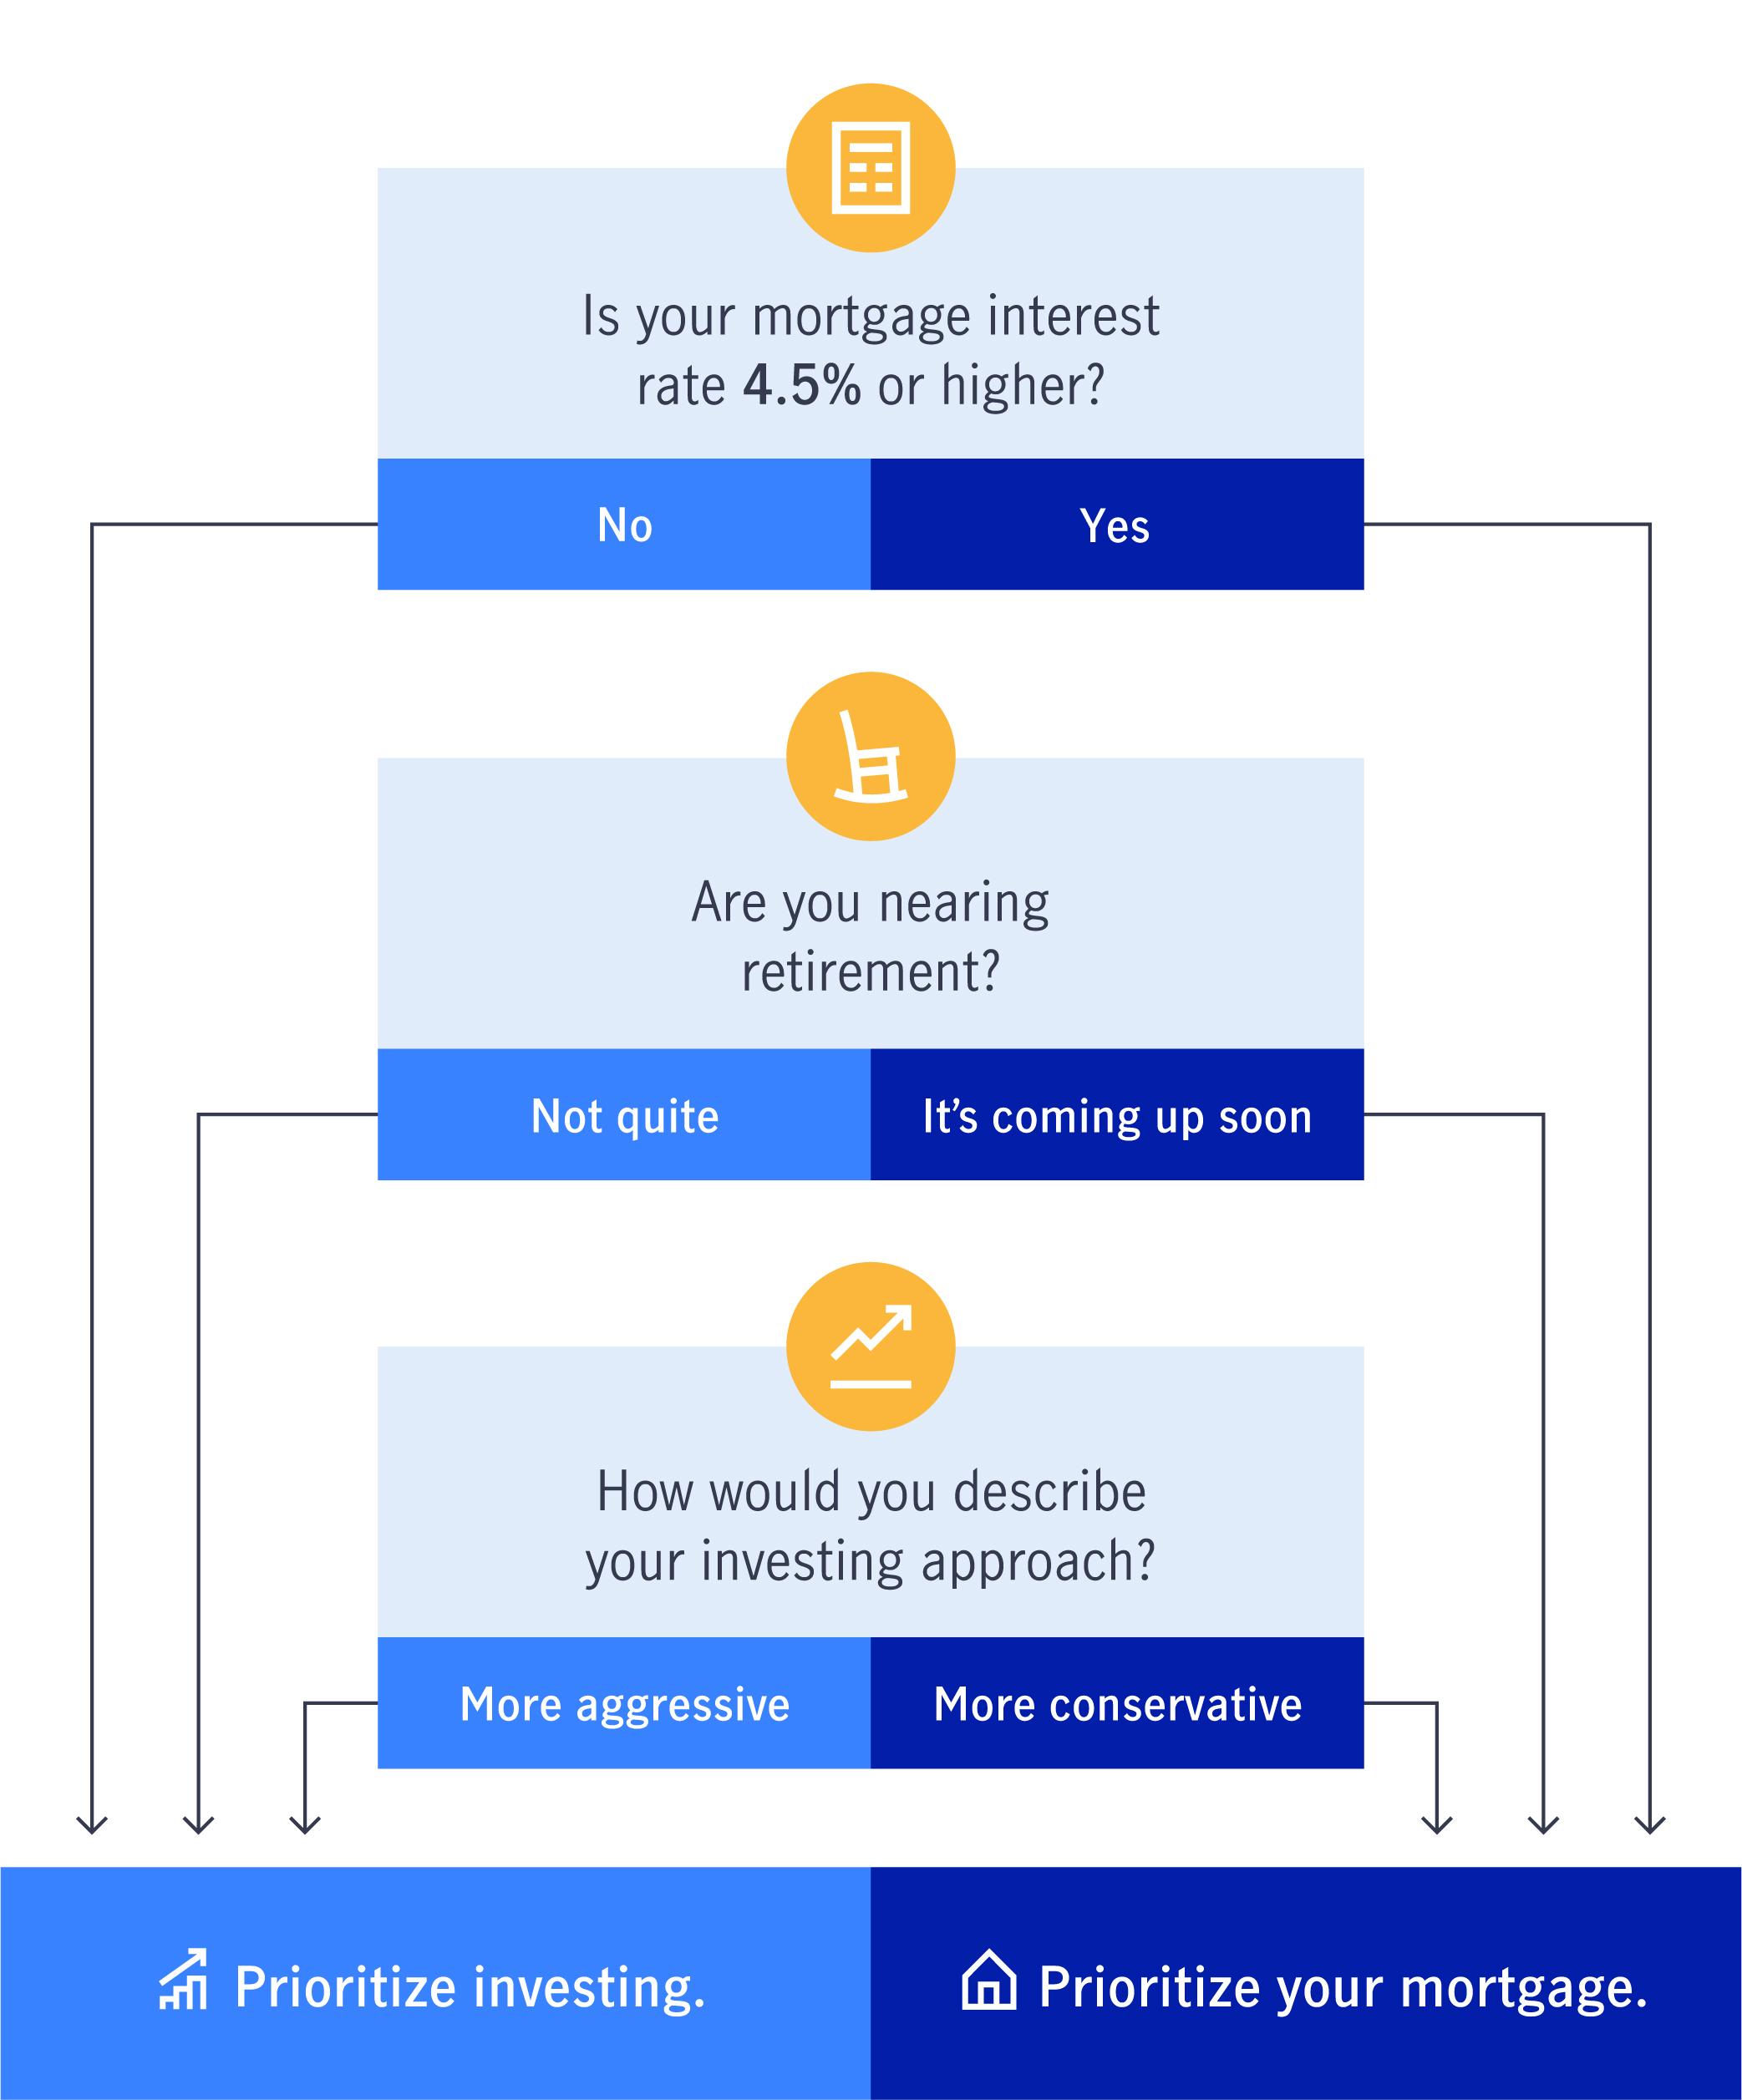 Illustration of deciding whether to pay of your mortgage or prioritize investing